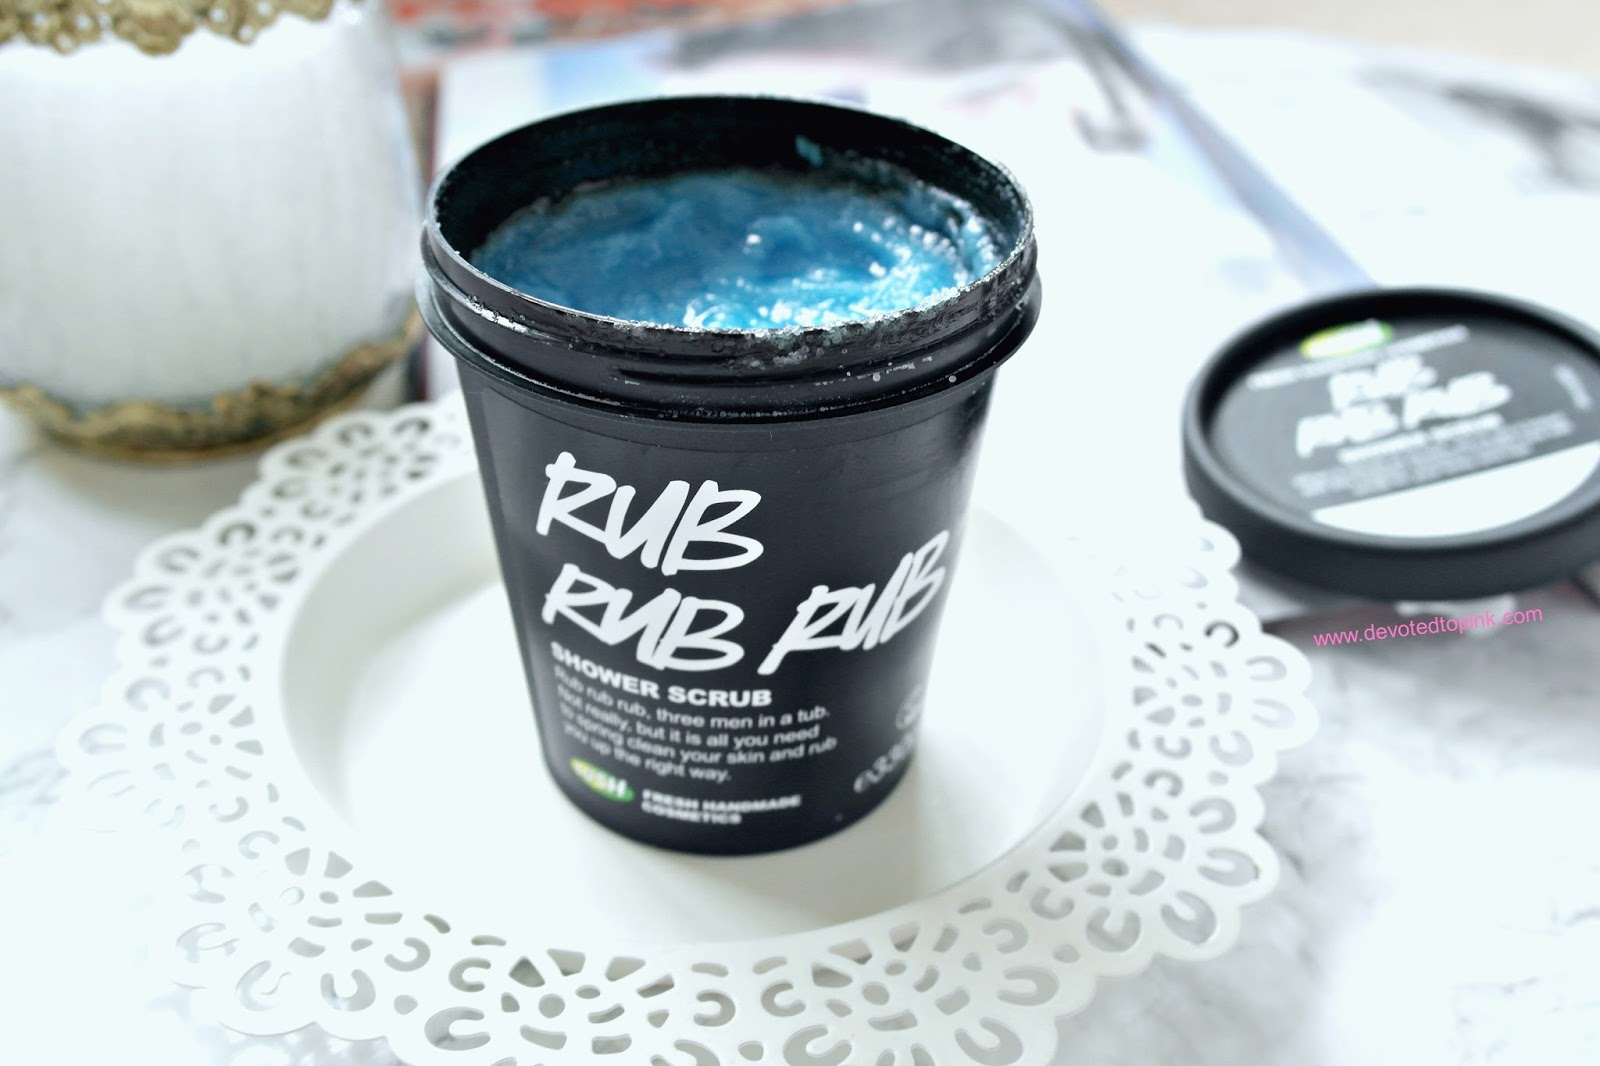 lush rub rub rub review, beauty blogger